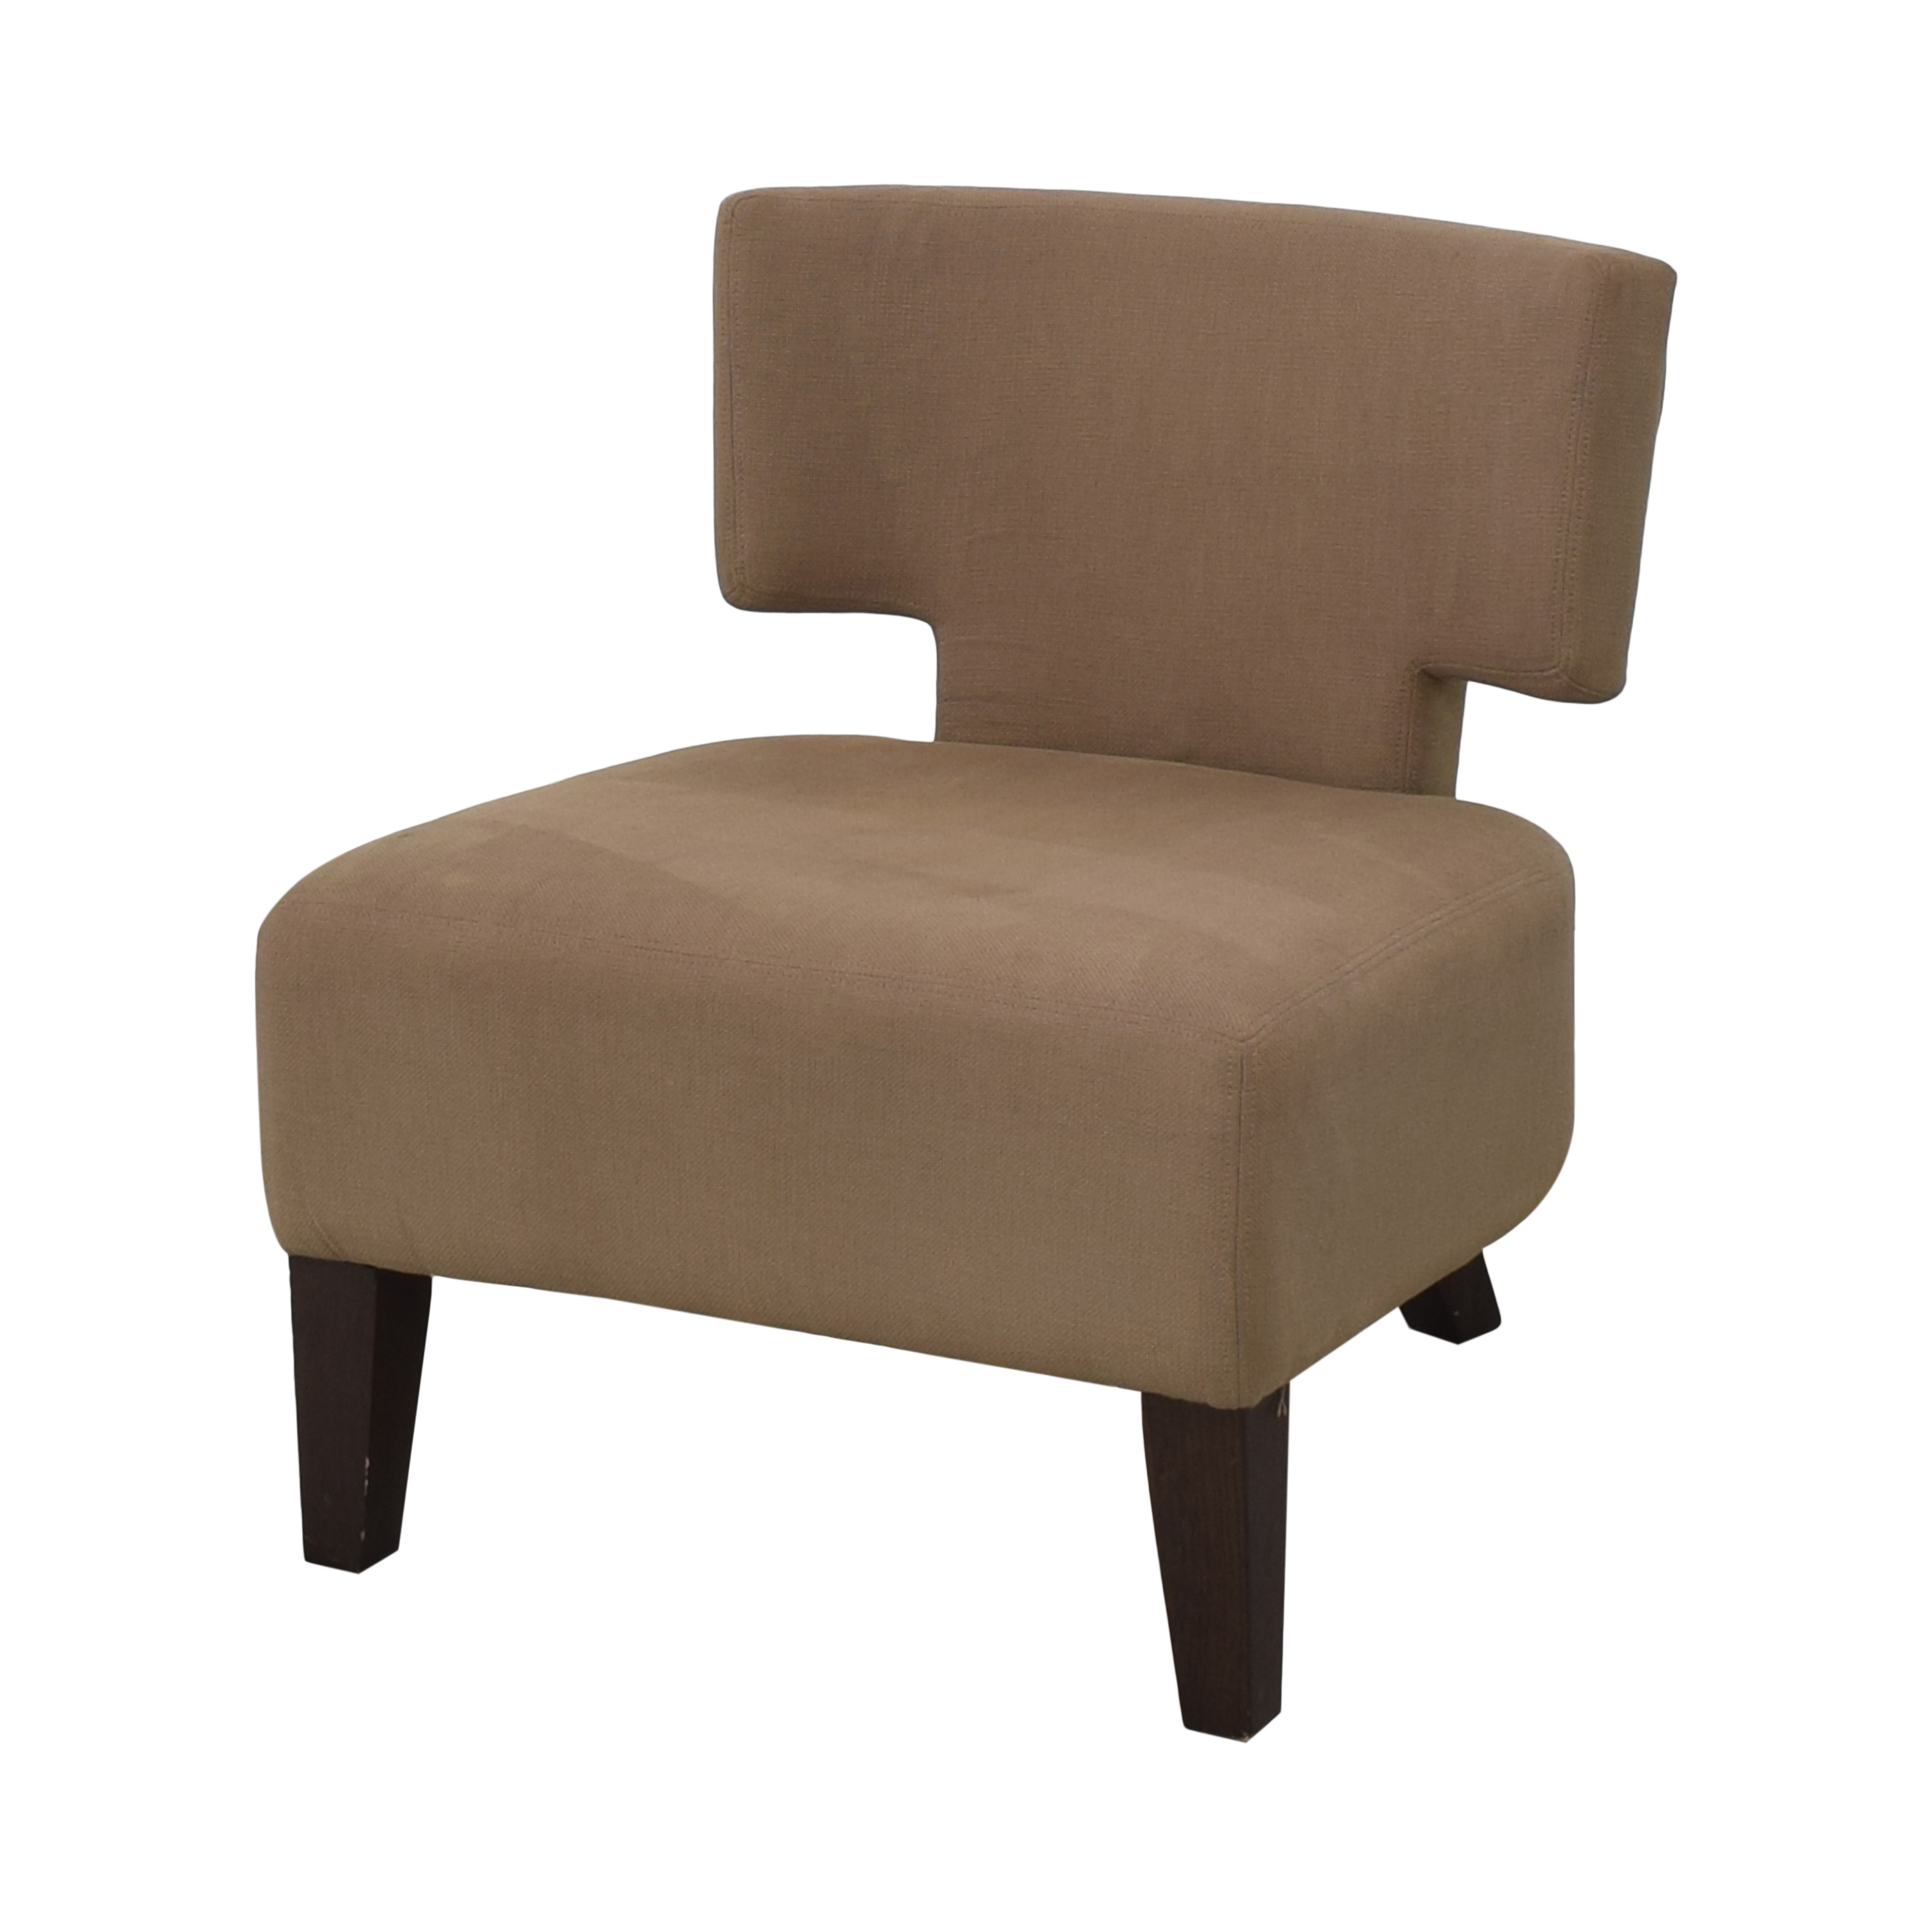 West Elm West Elm Geometric Lounge Chair for sale